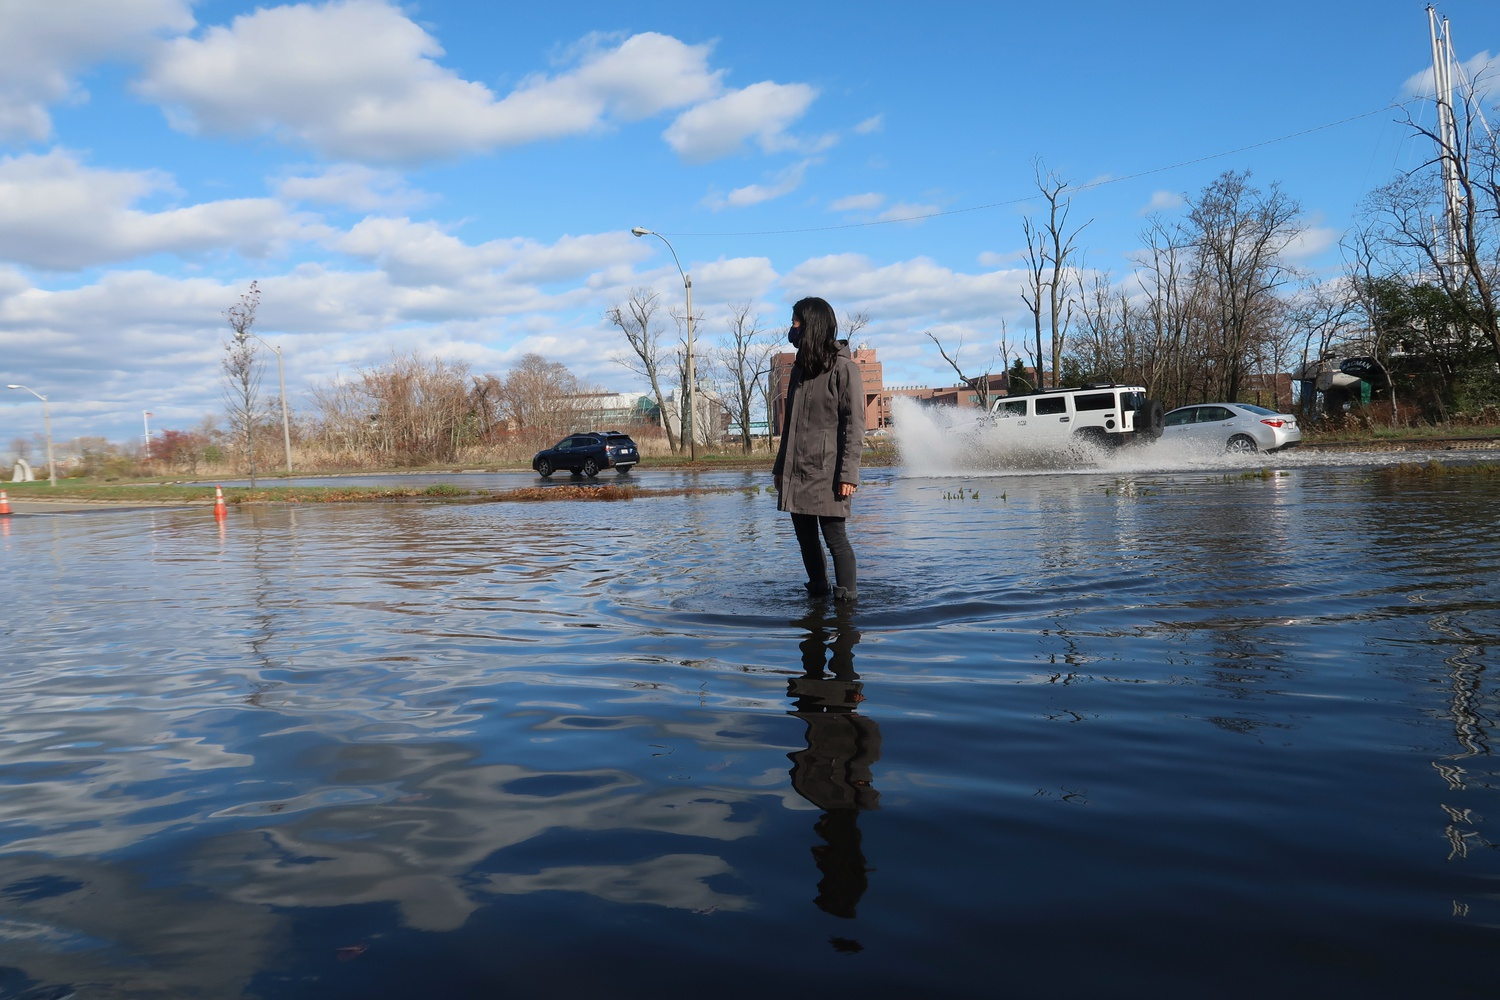 City Councilor Michelle Wu '07 surveys flooding at Morrissey Boulevard in Dorchester. As climate change causes sea level rise, these flooding events will become more common.